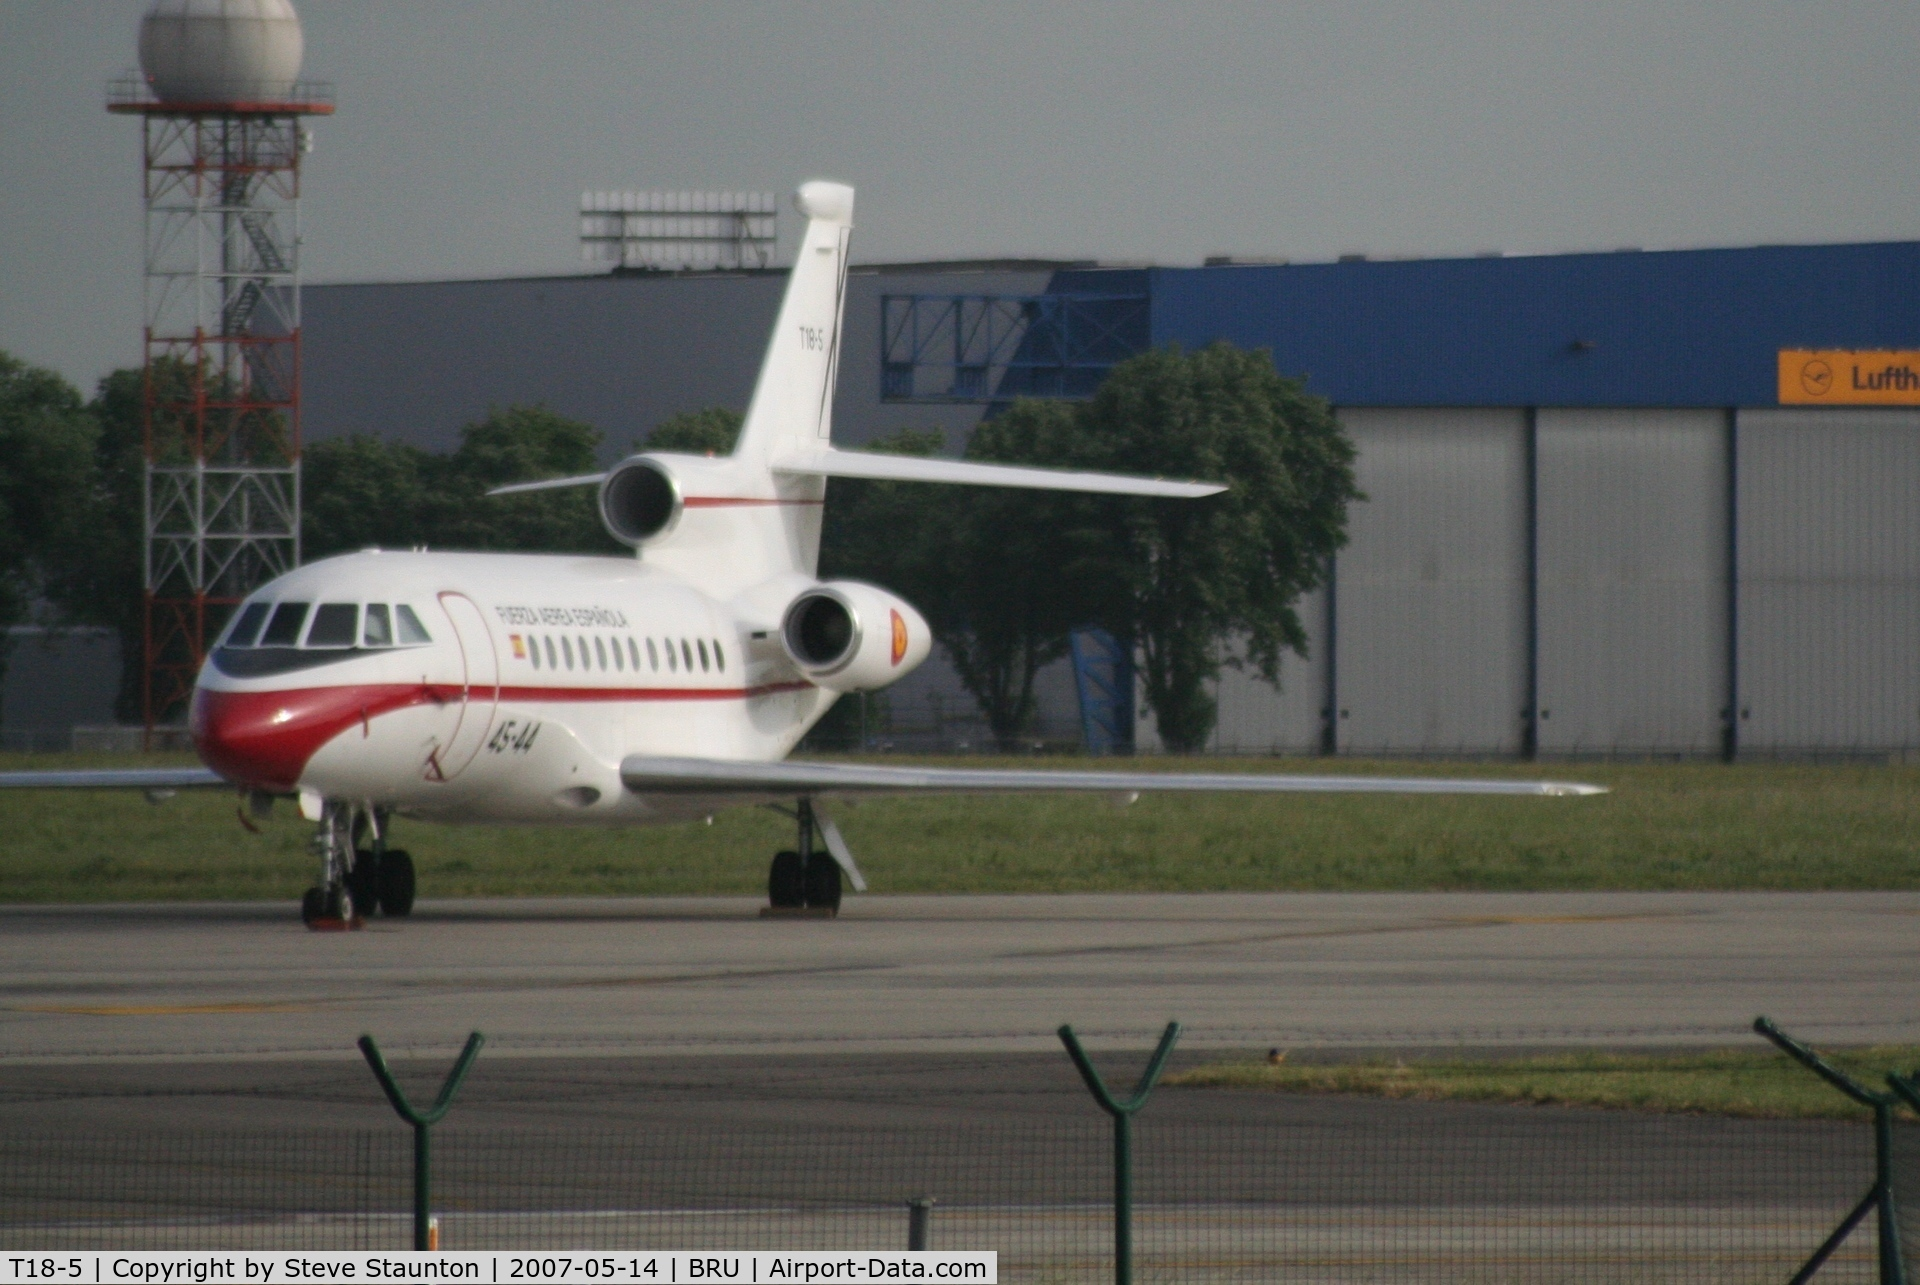 T18-5, 1989 Dassault Falcon 900 C/N 73, Taken from inside a coach at Brussels Airport